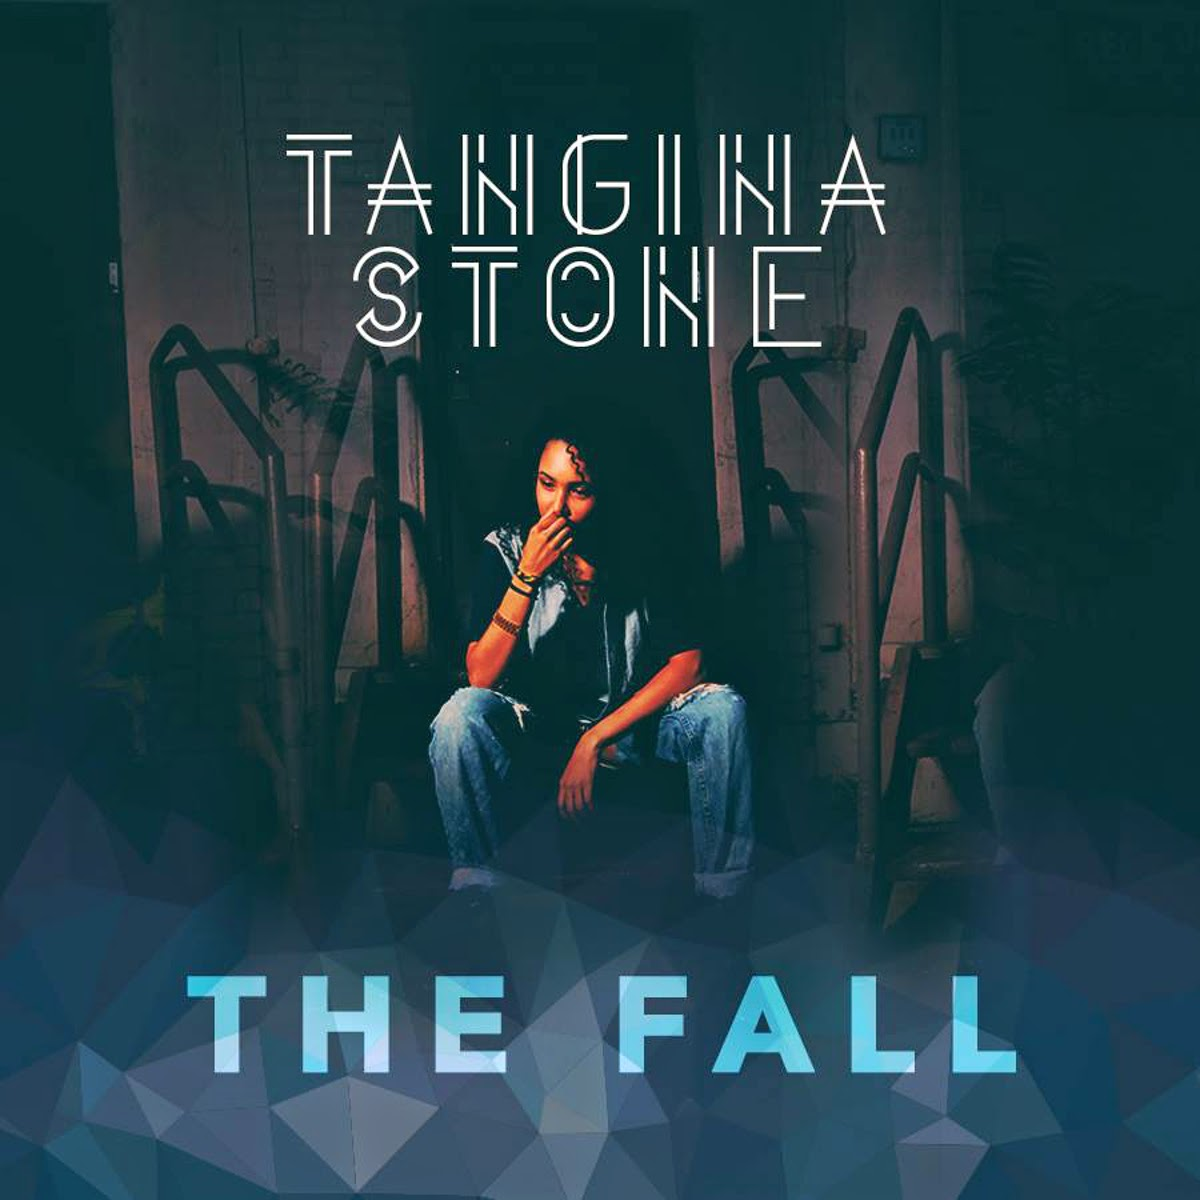 http://www.d4am.net/2014/09/tangina-stone-fall.html